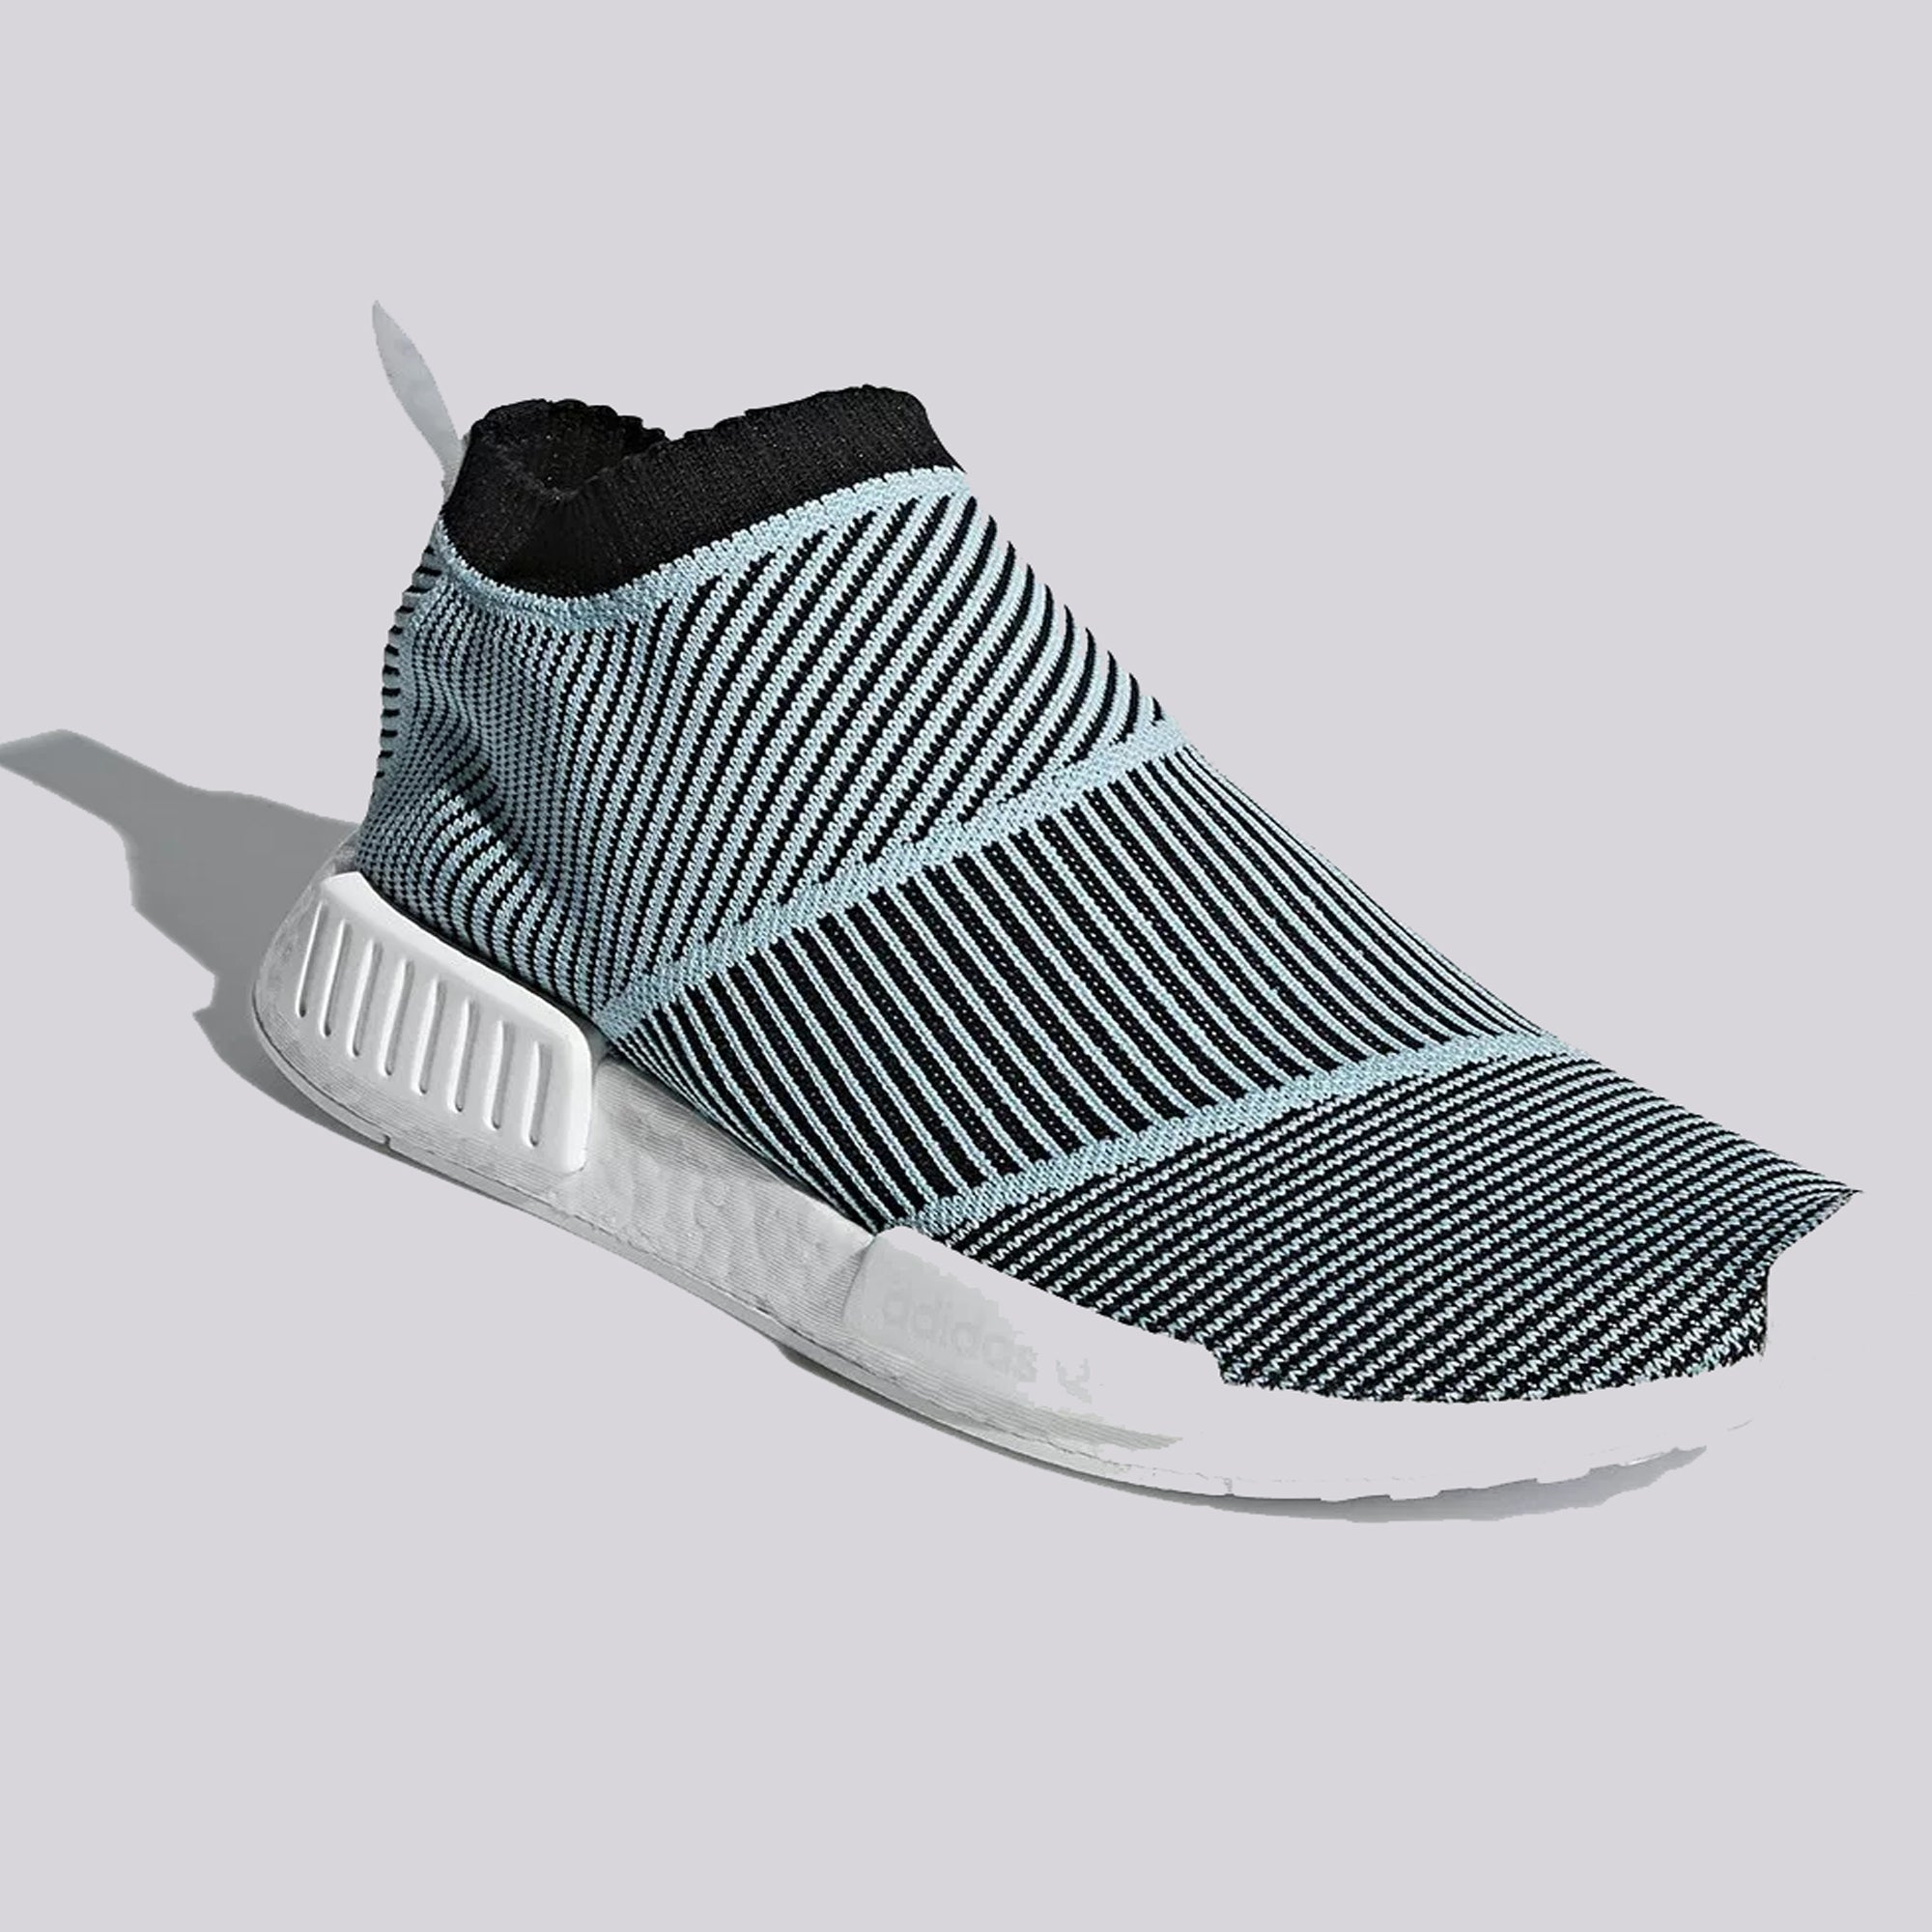 0d8be7629adc5 NMD City Sock CS1 Parley Primeknit in Core Black Blue – PZOZO